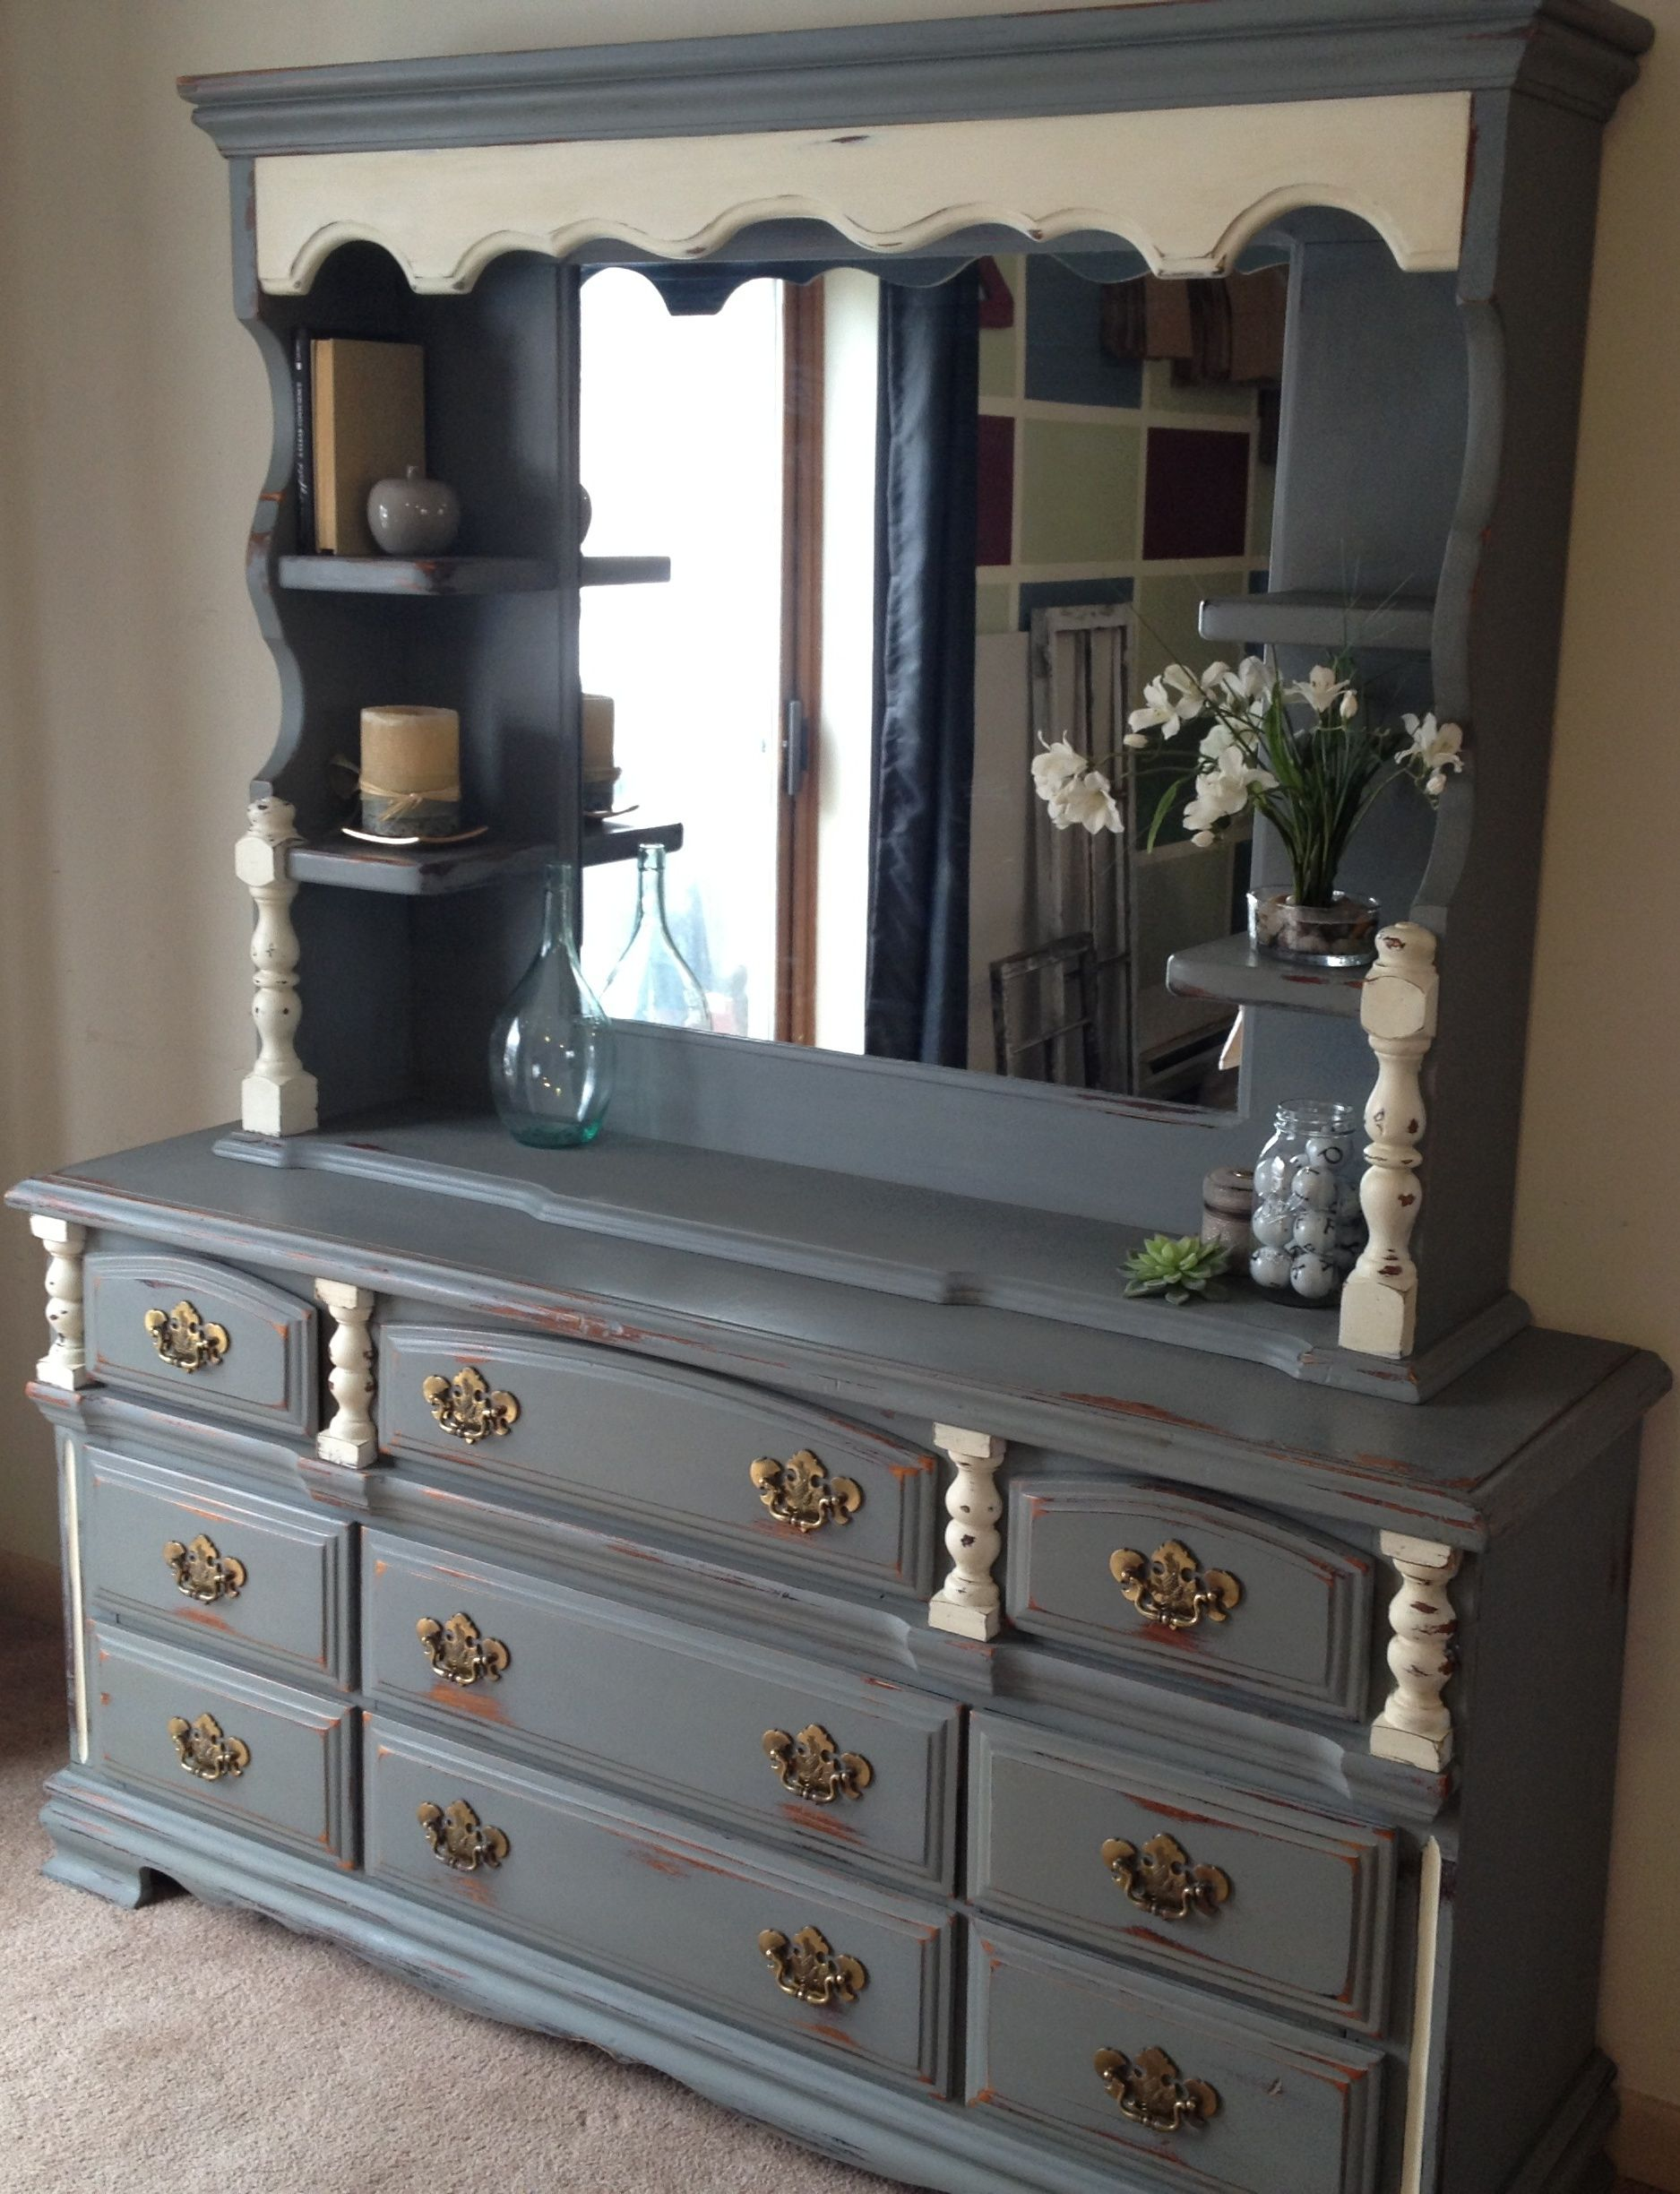 dresser with hutch mirror mirror shelf painted dresser with mirror google search furniture in 2018